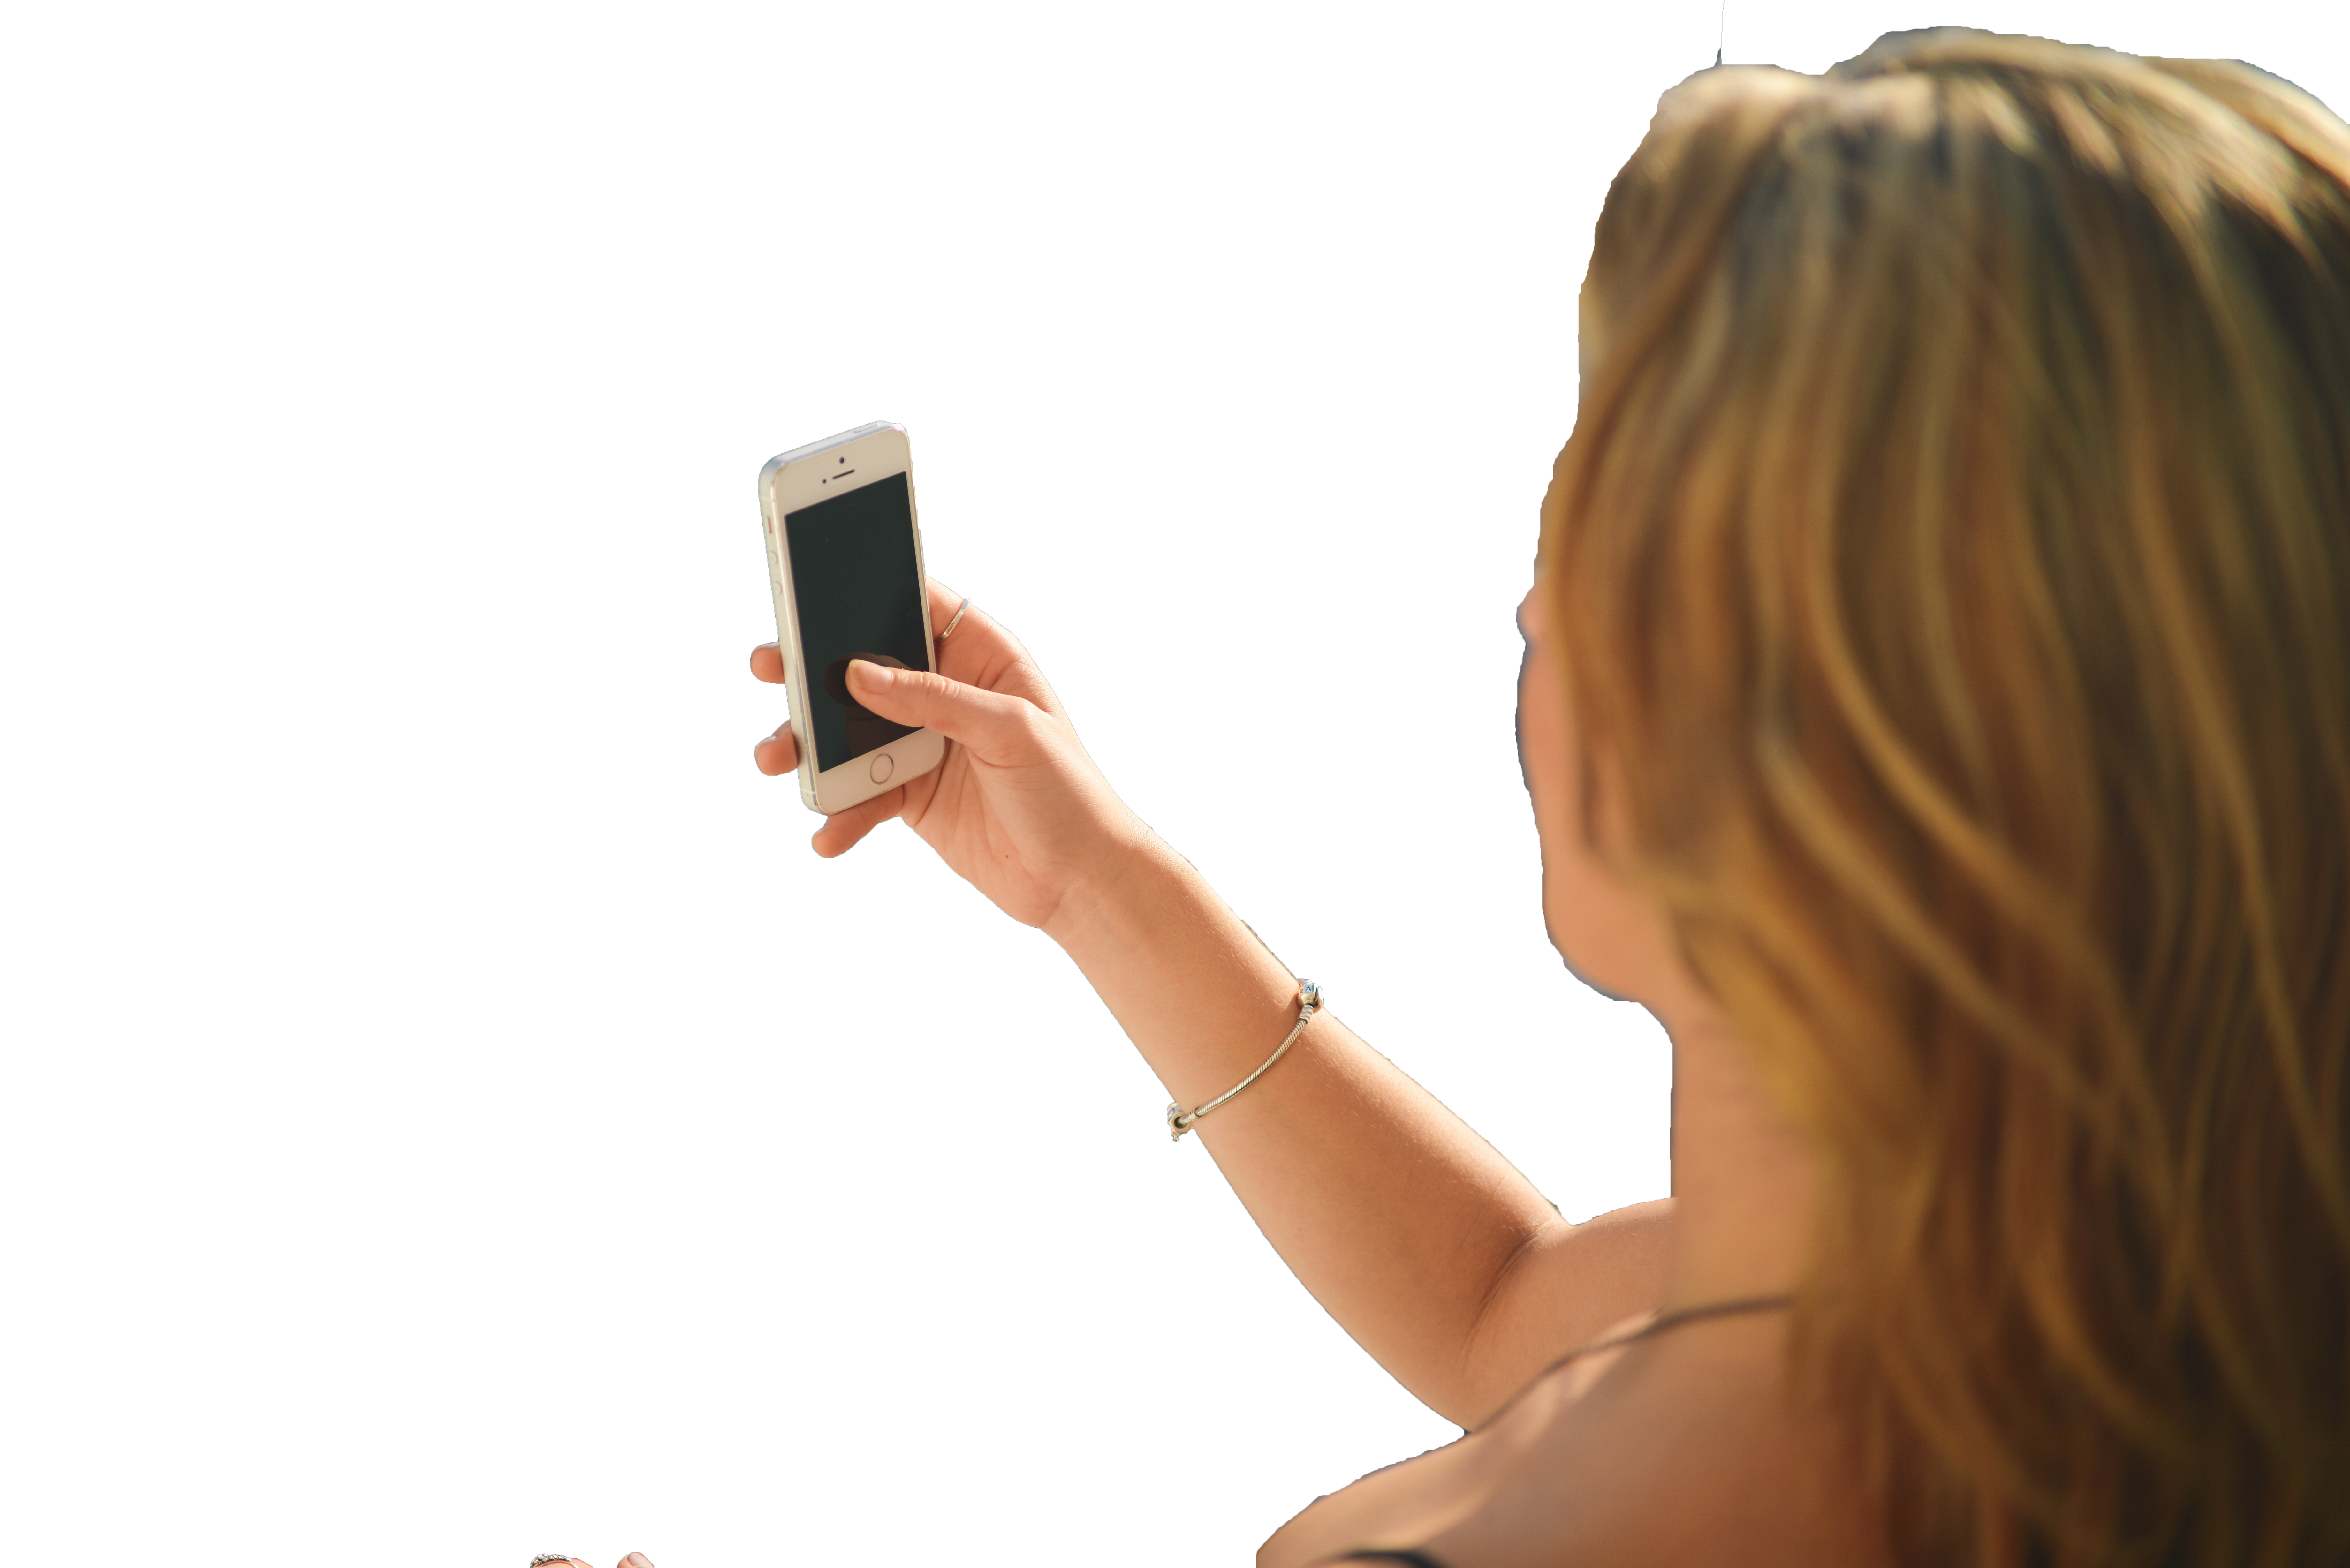 girl with mobile in hand Transparent Background PNG